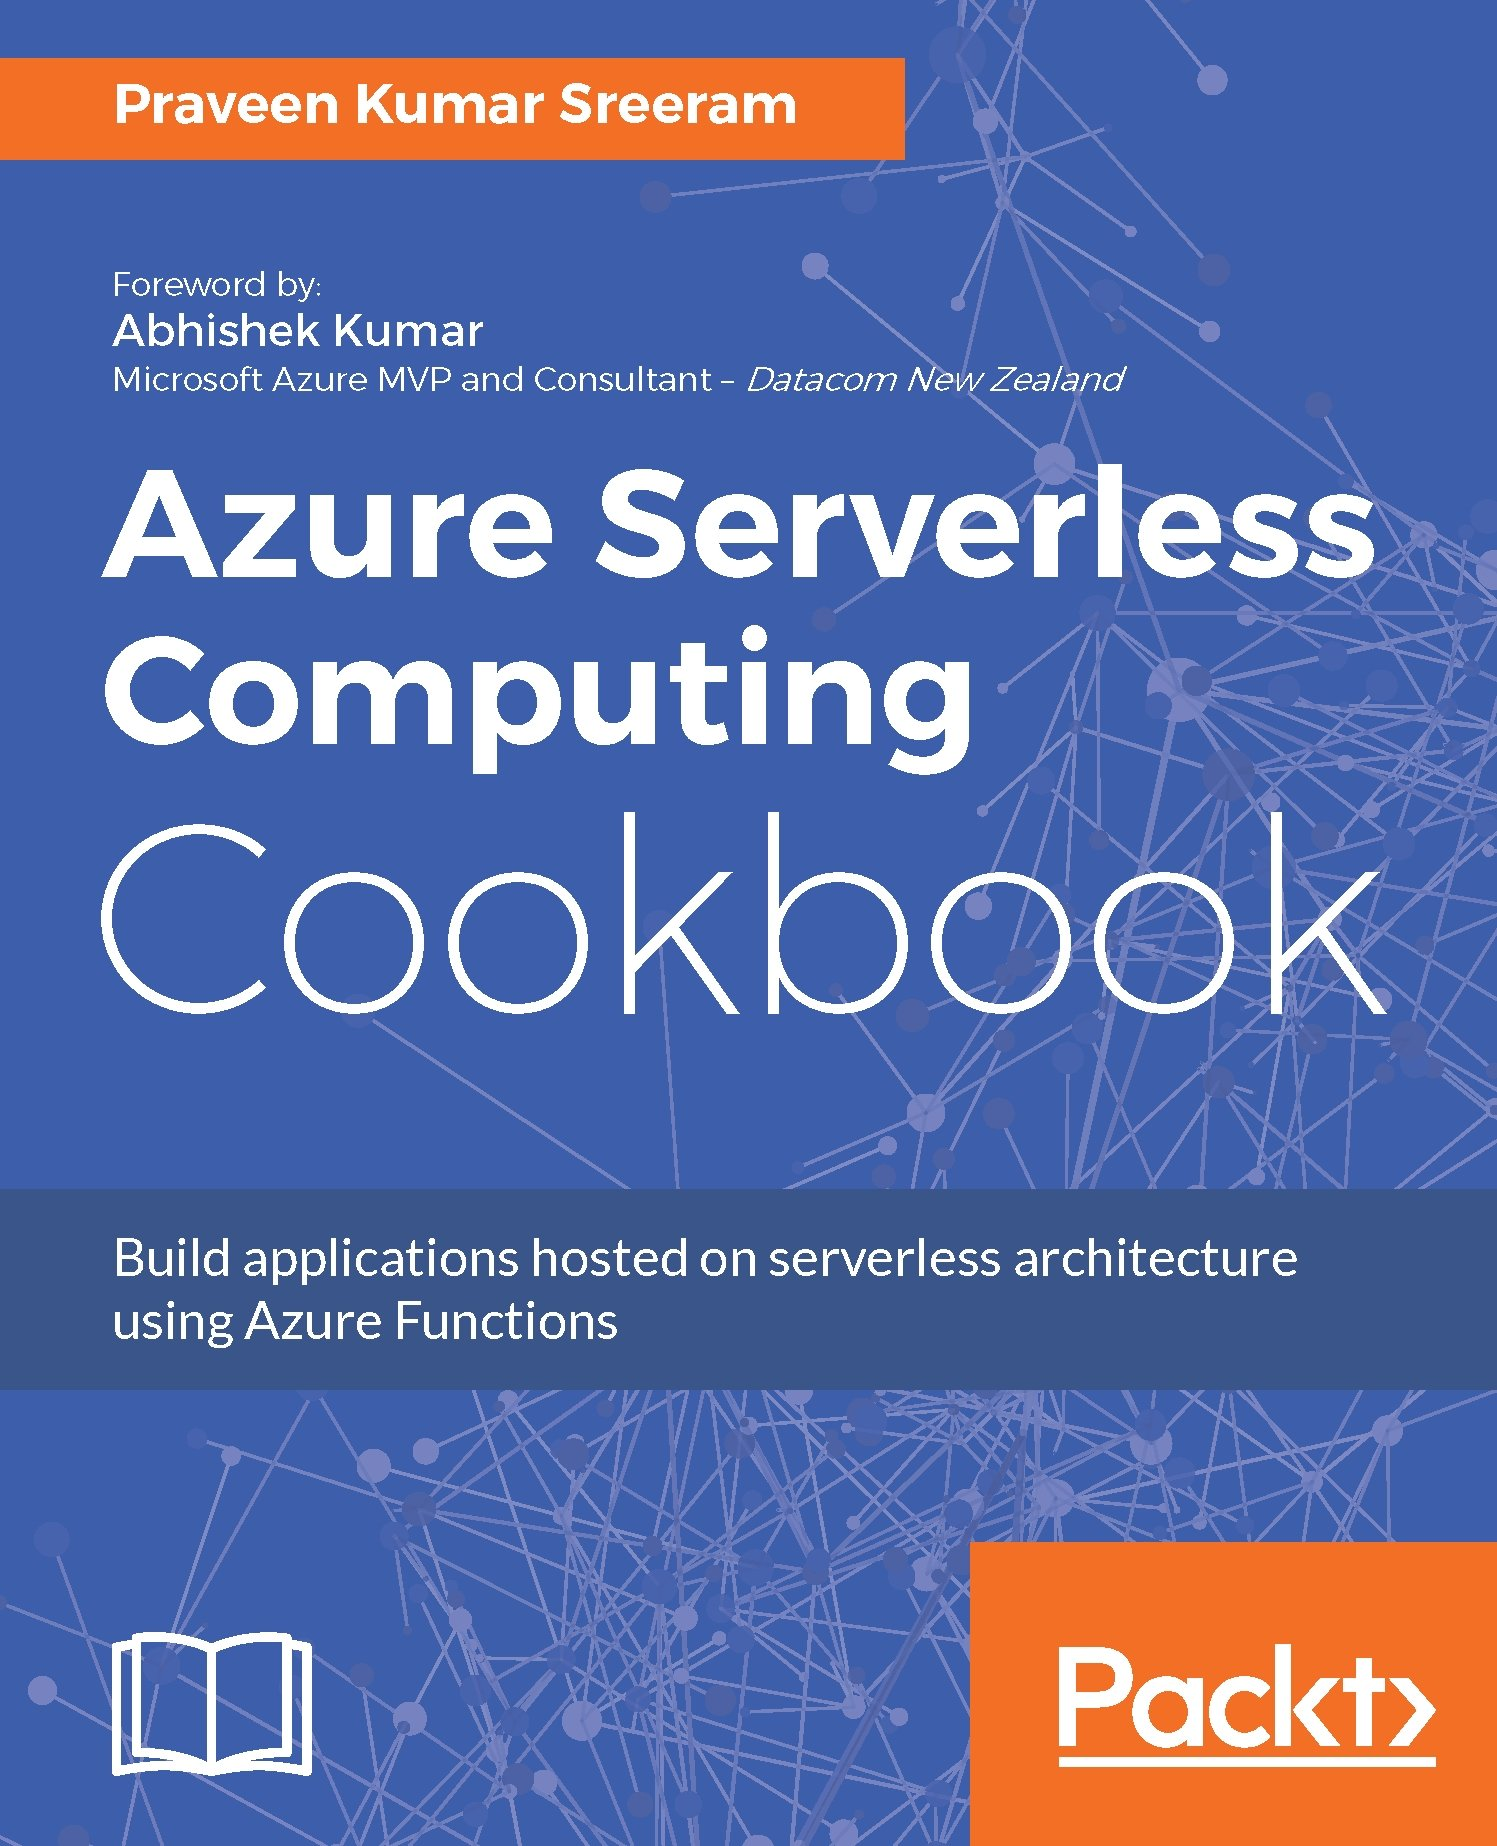 Azure Serverless Computing Cookbook: Build applications hosted on serverless architecture using Azure Functions por Praveen Kumar Sreeram